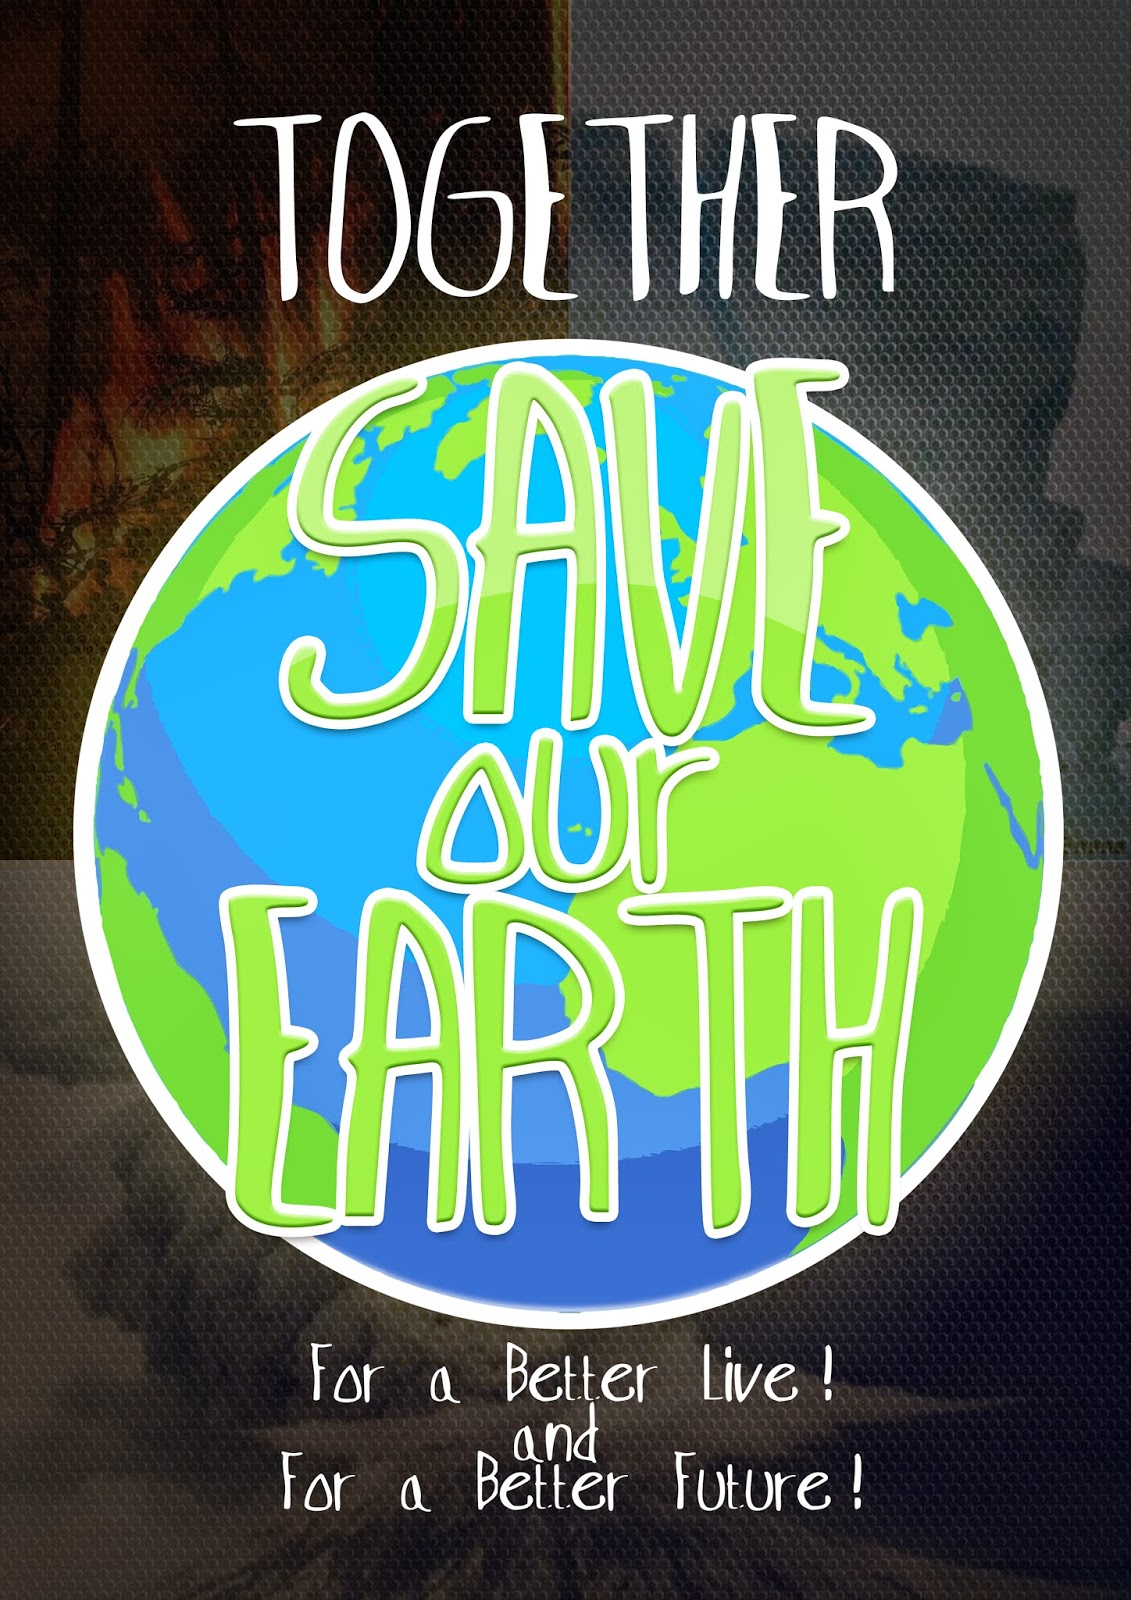 APRILIA DRPW Poster Save Our Earth